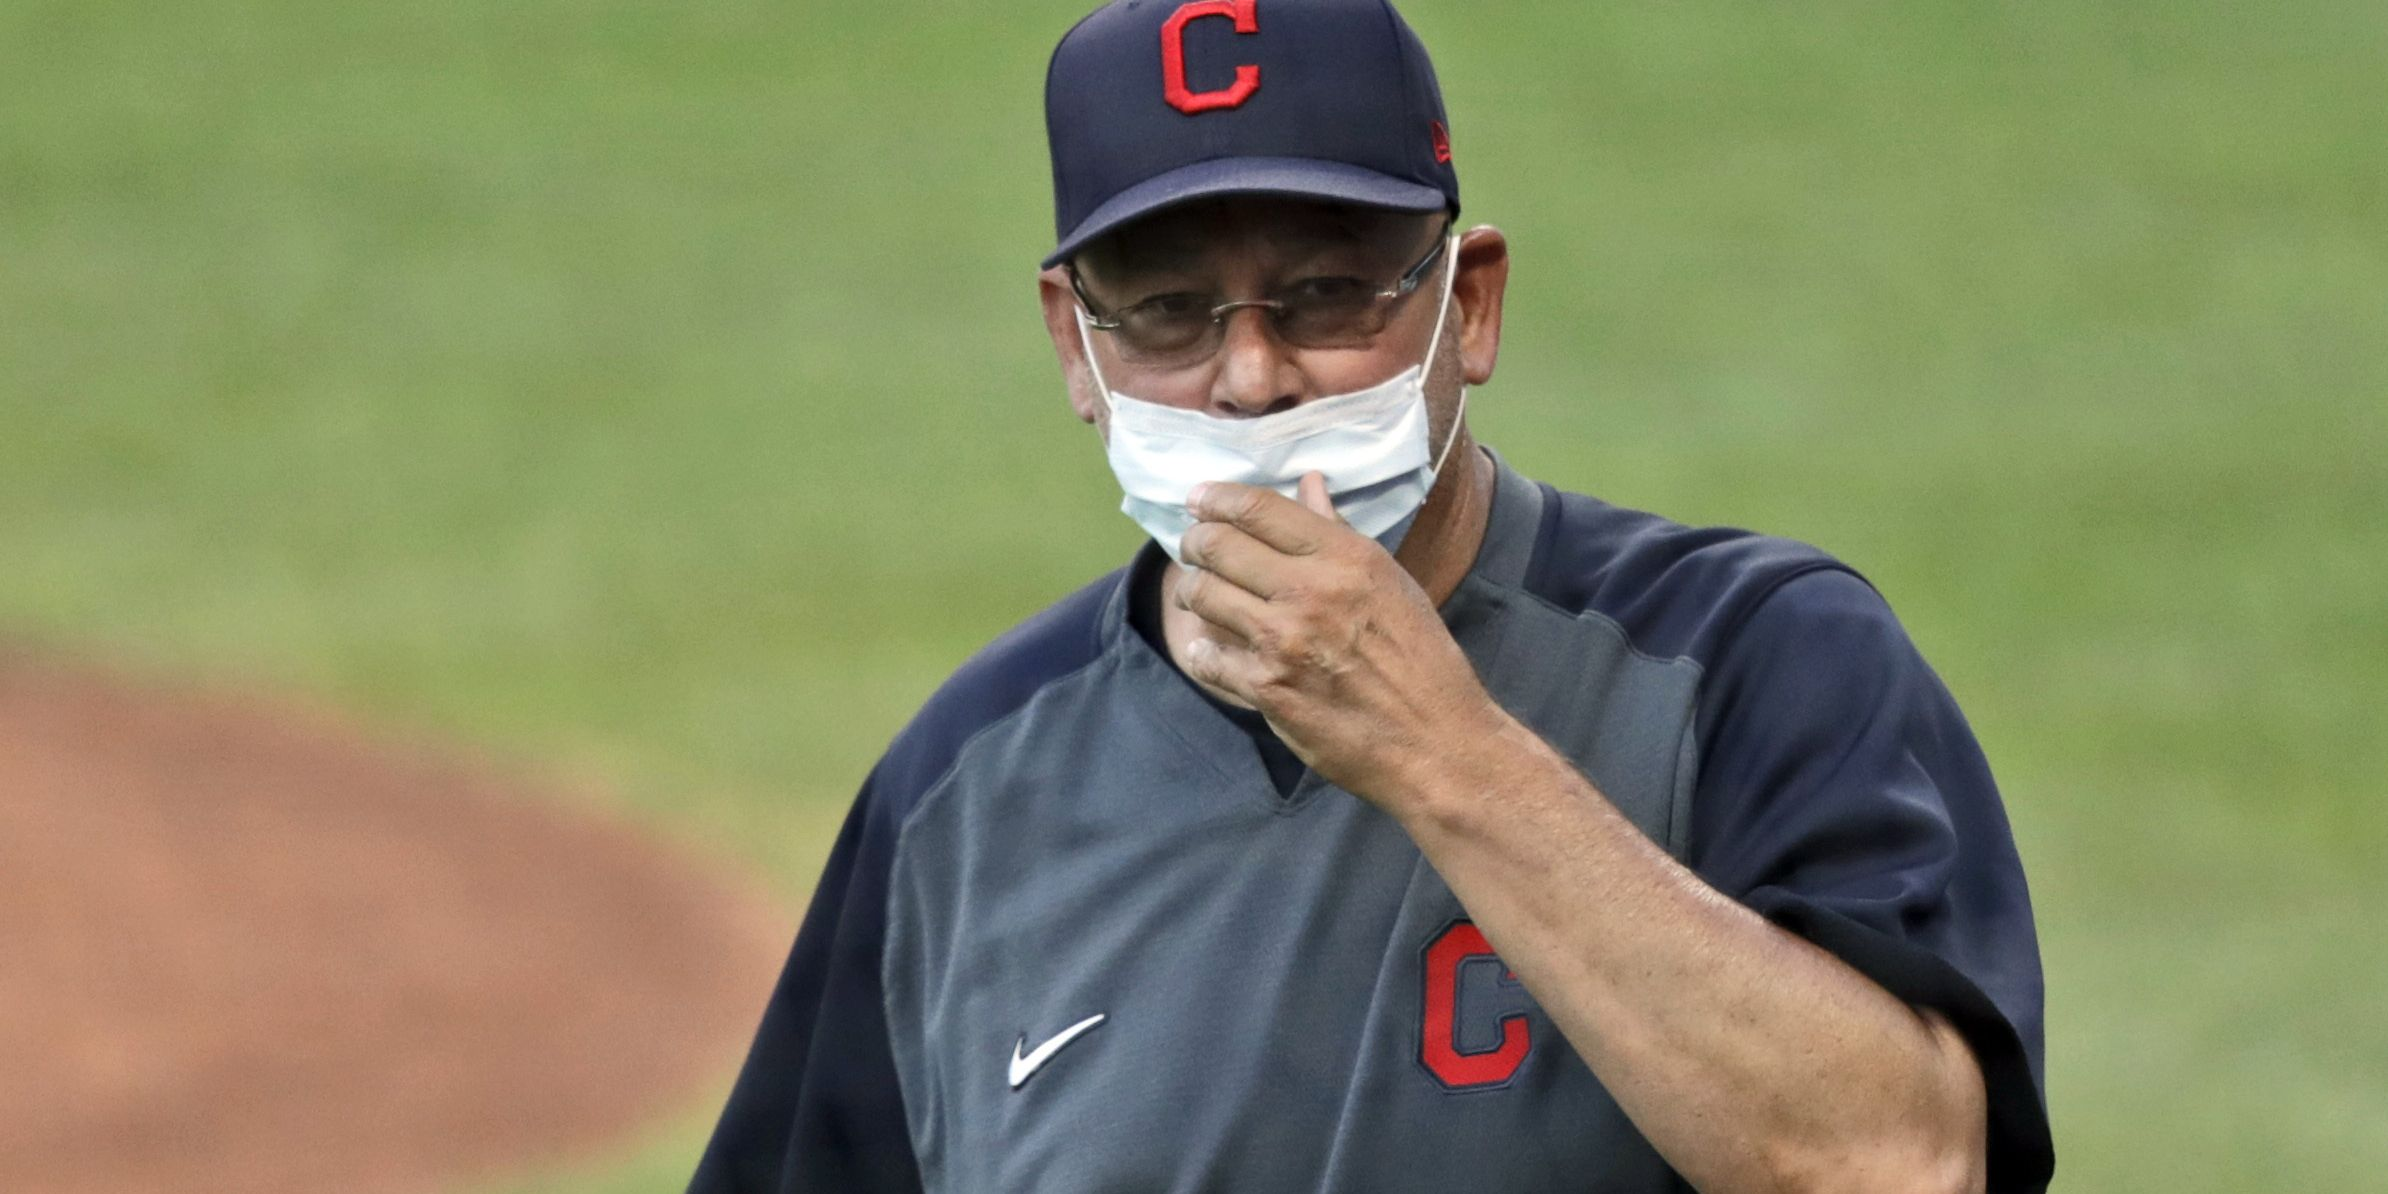 Indians' Francona undergoes procedure, not ready to manage